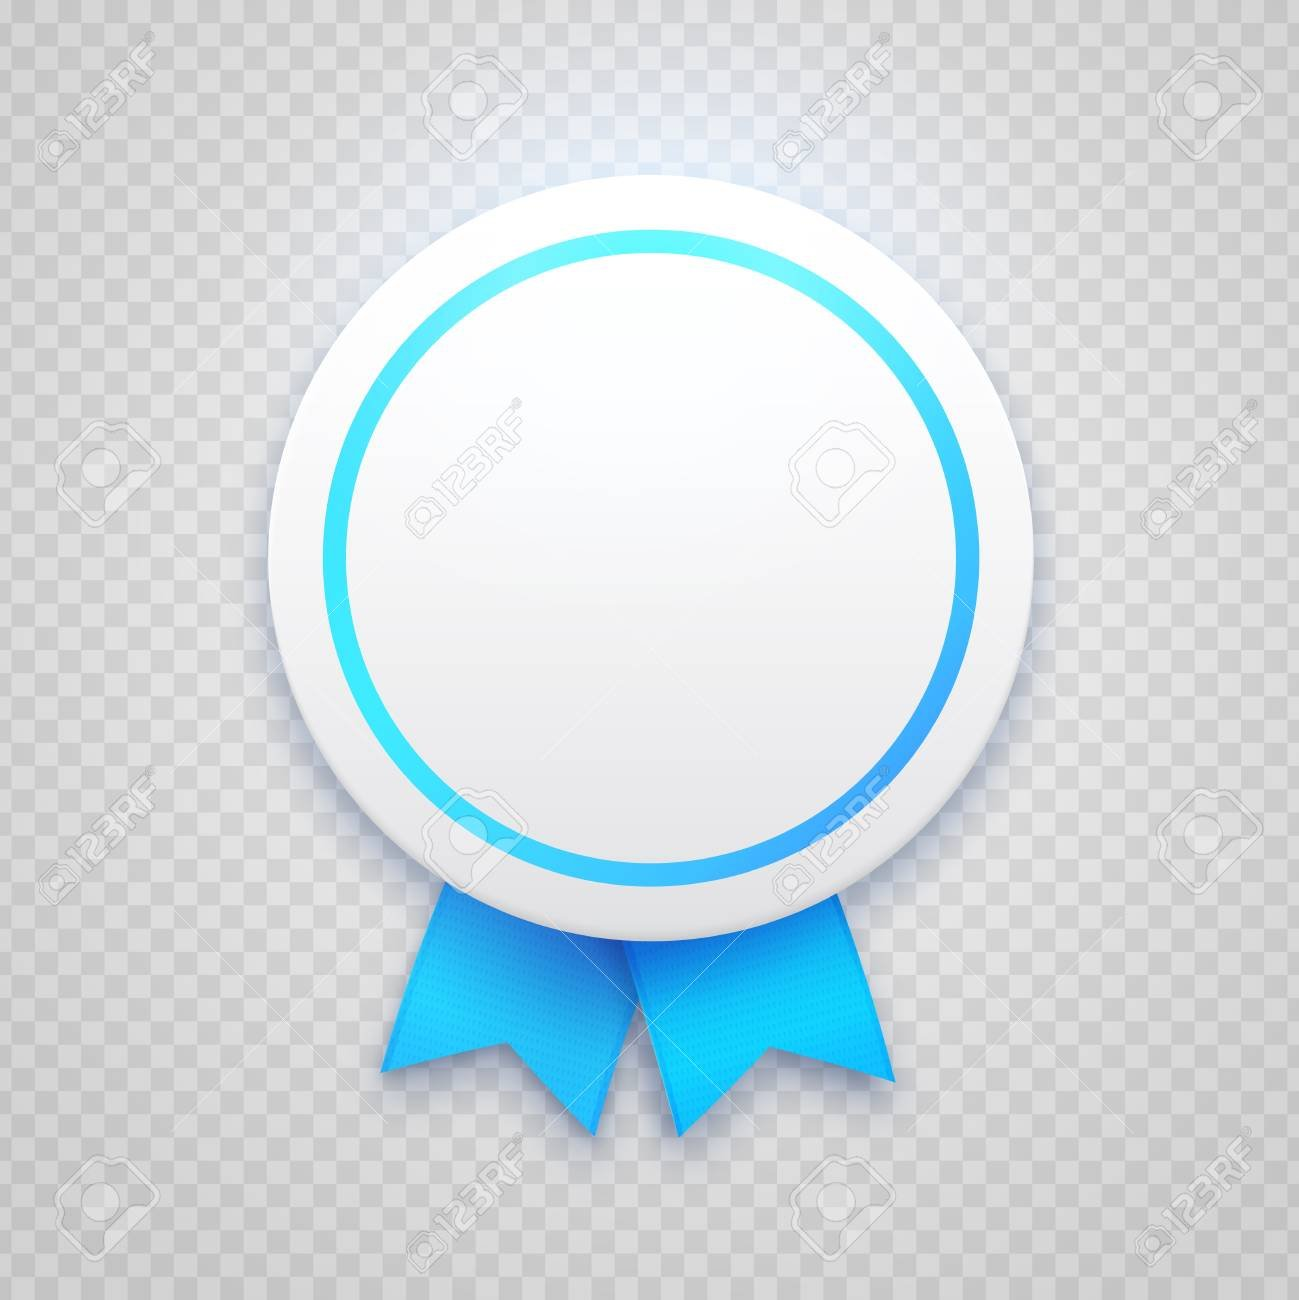 Round Paper Badge With Blue Ribbon On Transparent Background 1299x1300